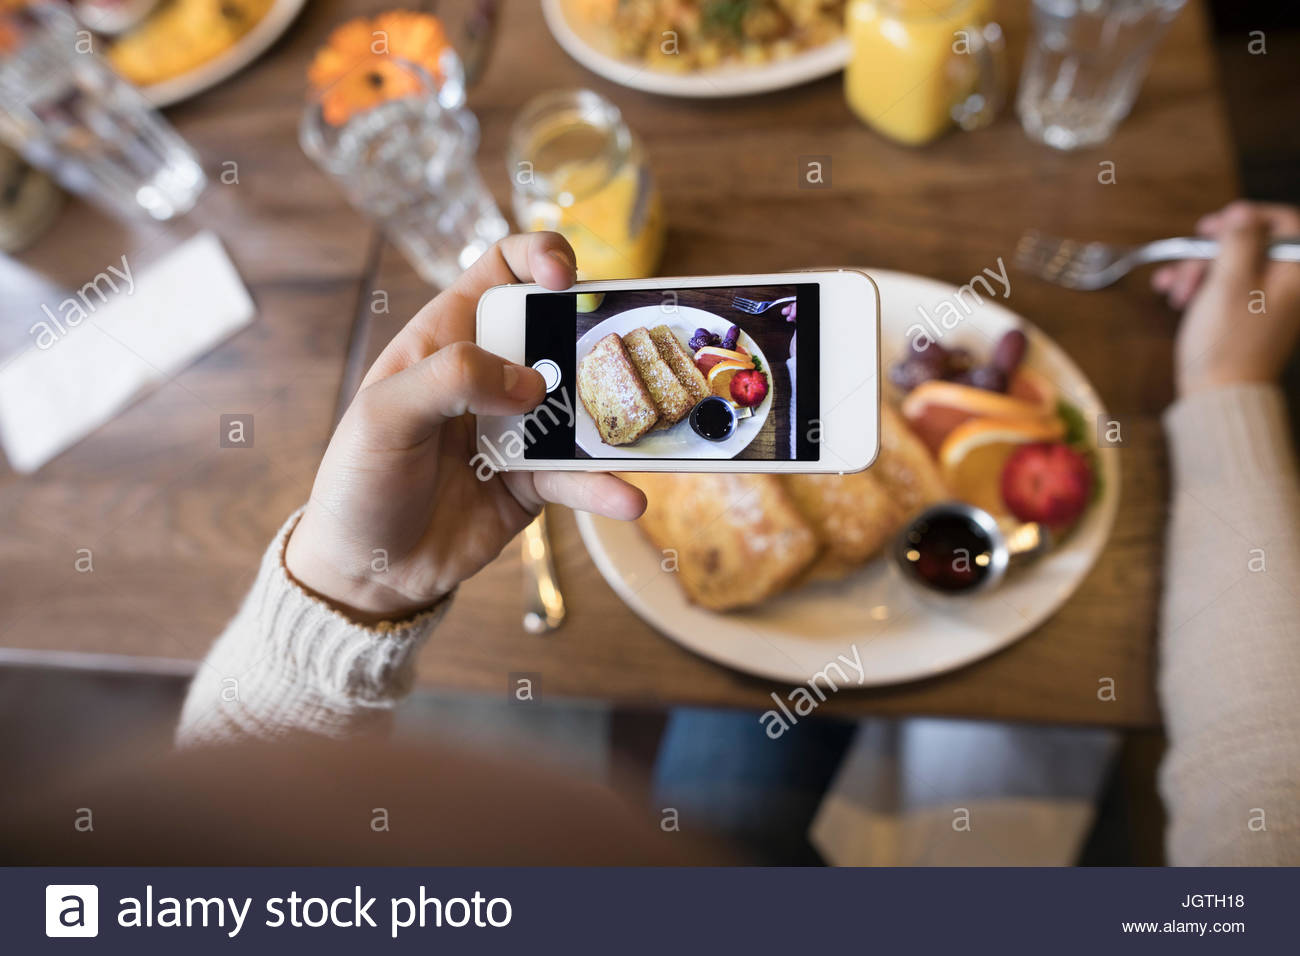 Personal perspective teenage girl photographing brunch food with camera phone - Stock Image